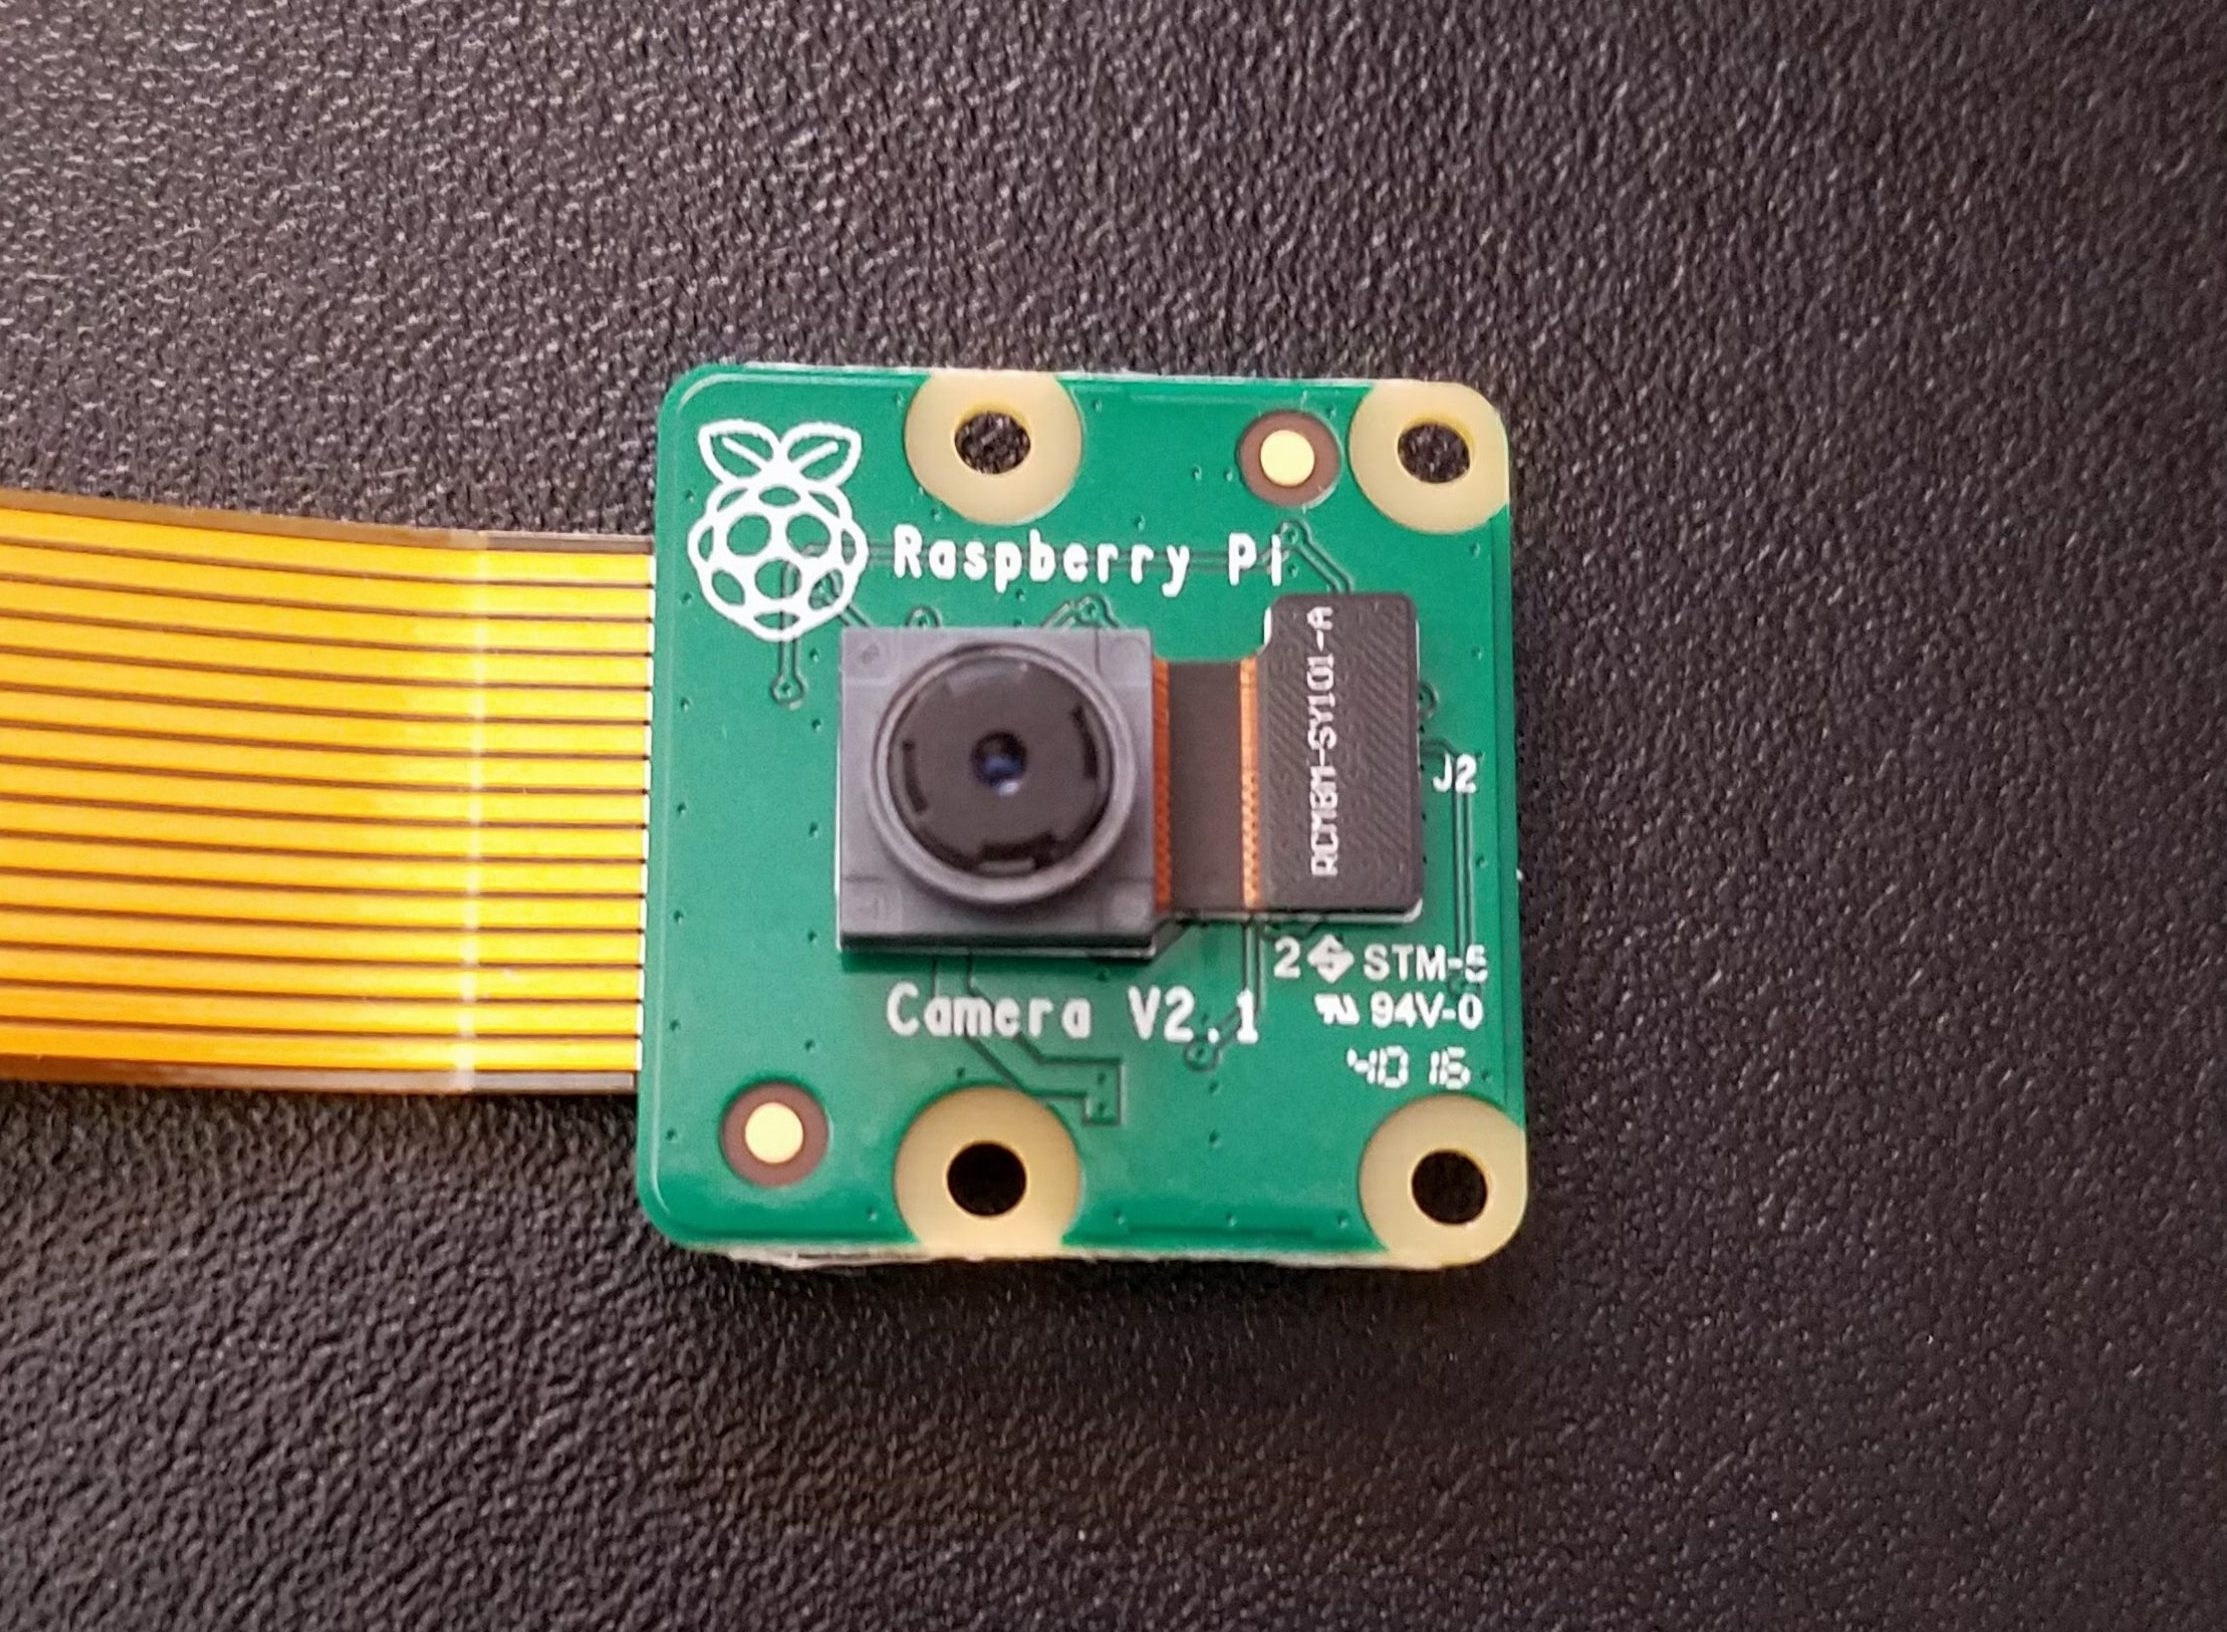 Monitor a Pi Zero-hosted security camera with Node-RED, FRED